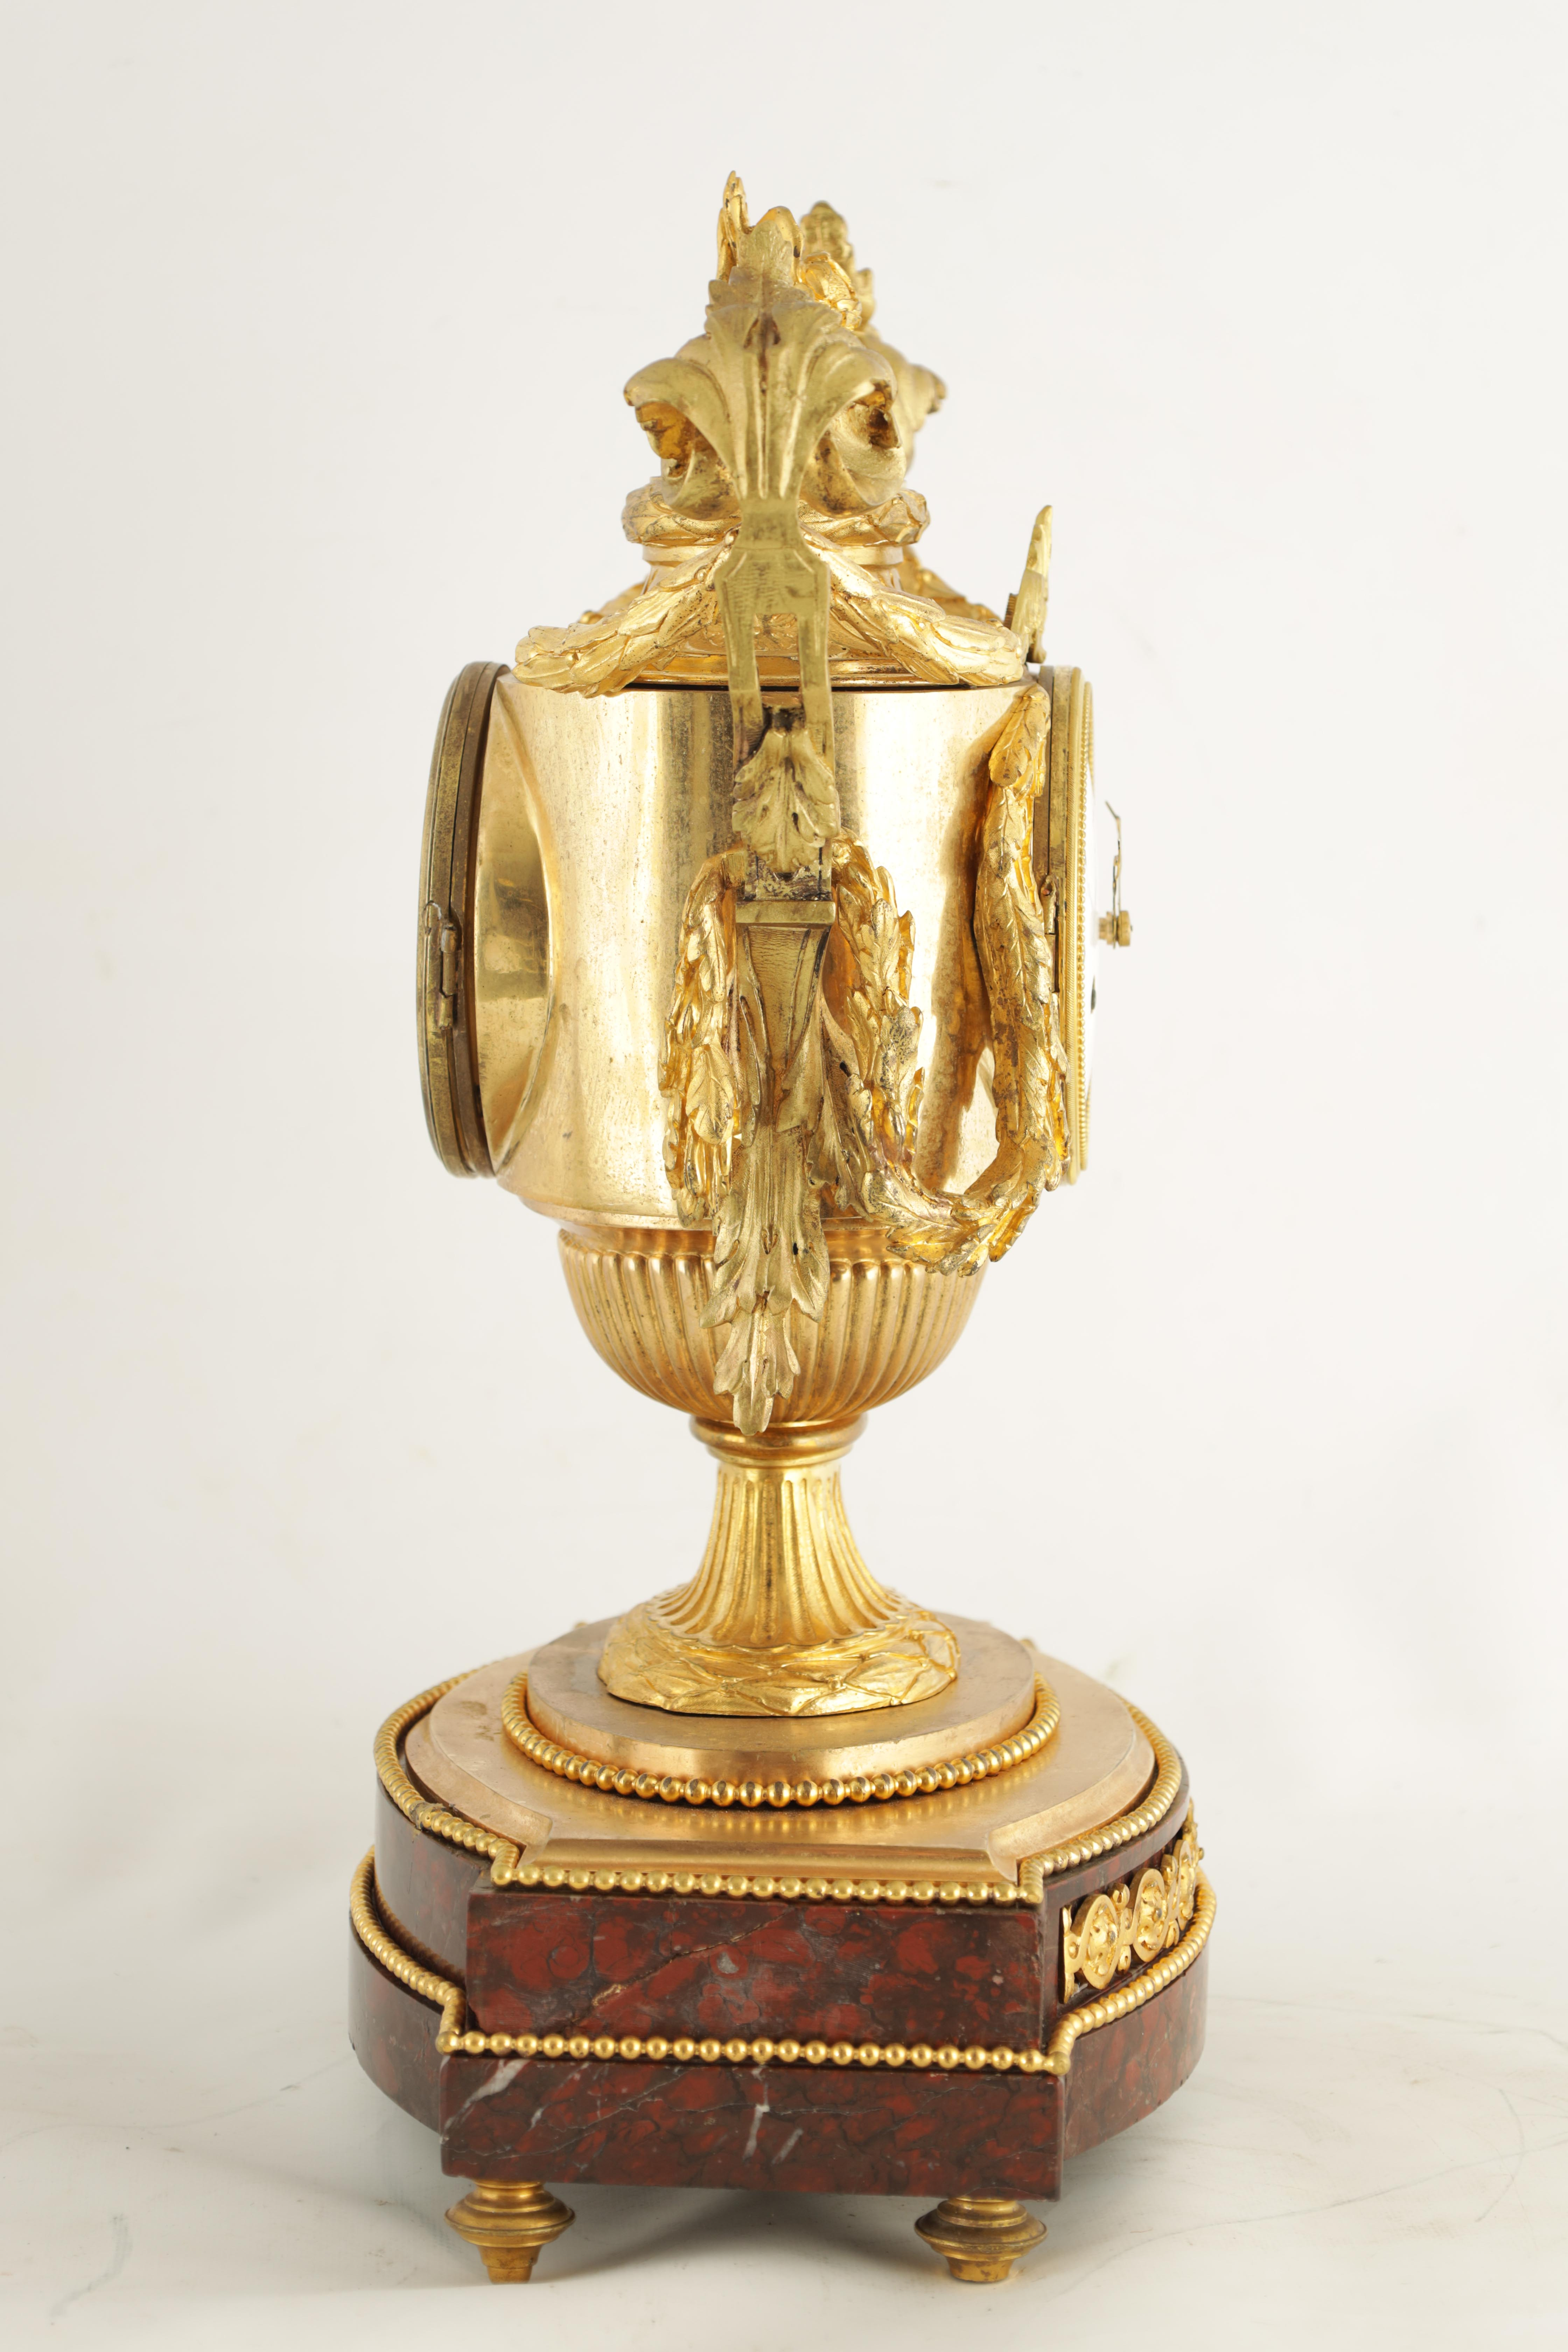 GASTON JOLY, A PARIS AN IMPRESSIVE EARLY 19TH CENTURY FRENCH ORMOLU AND ROUGE MARBLE URN SHAPED - Image 5 of 7